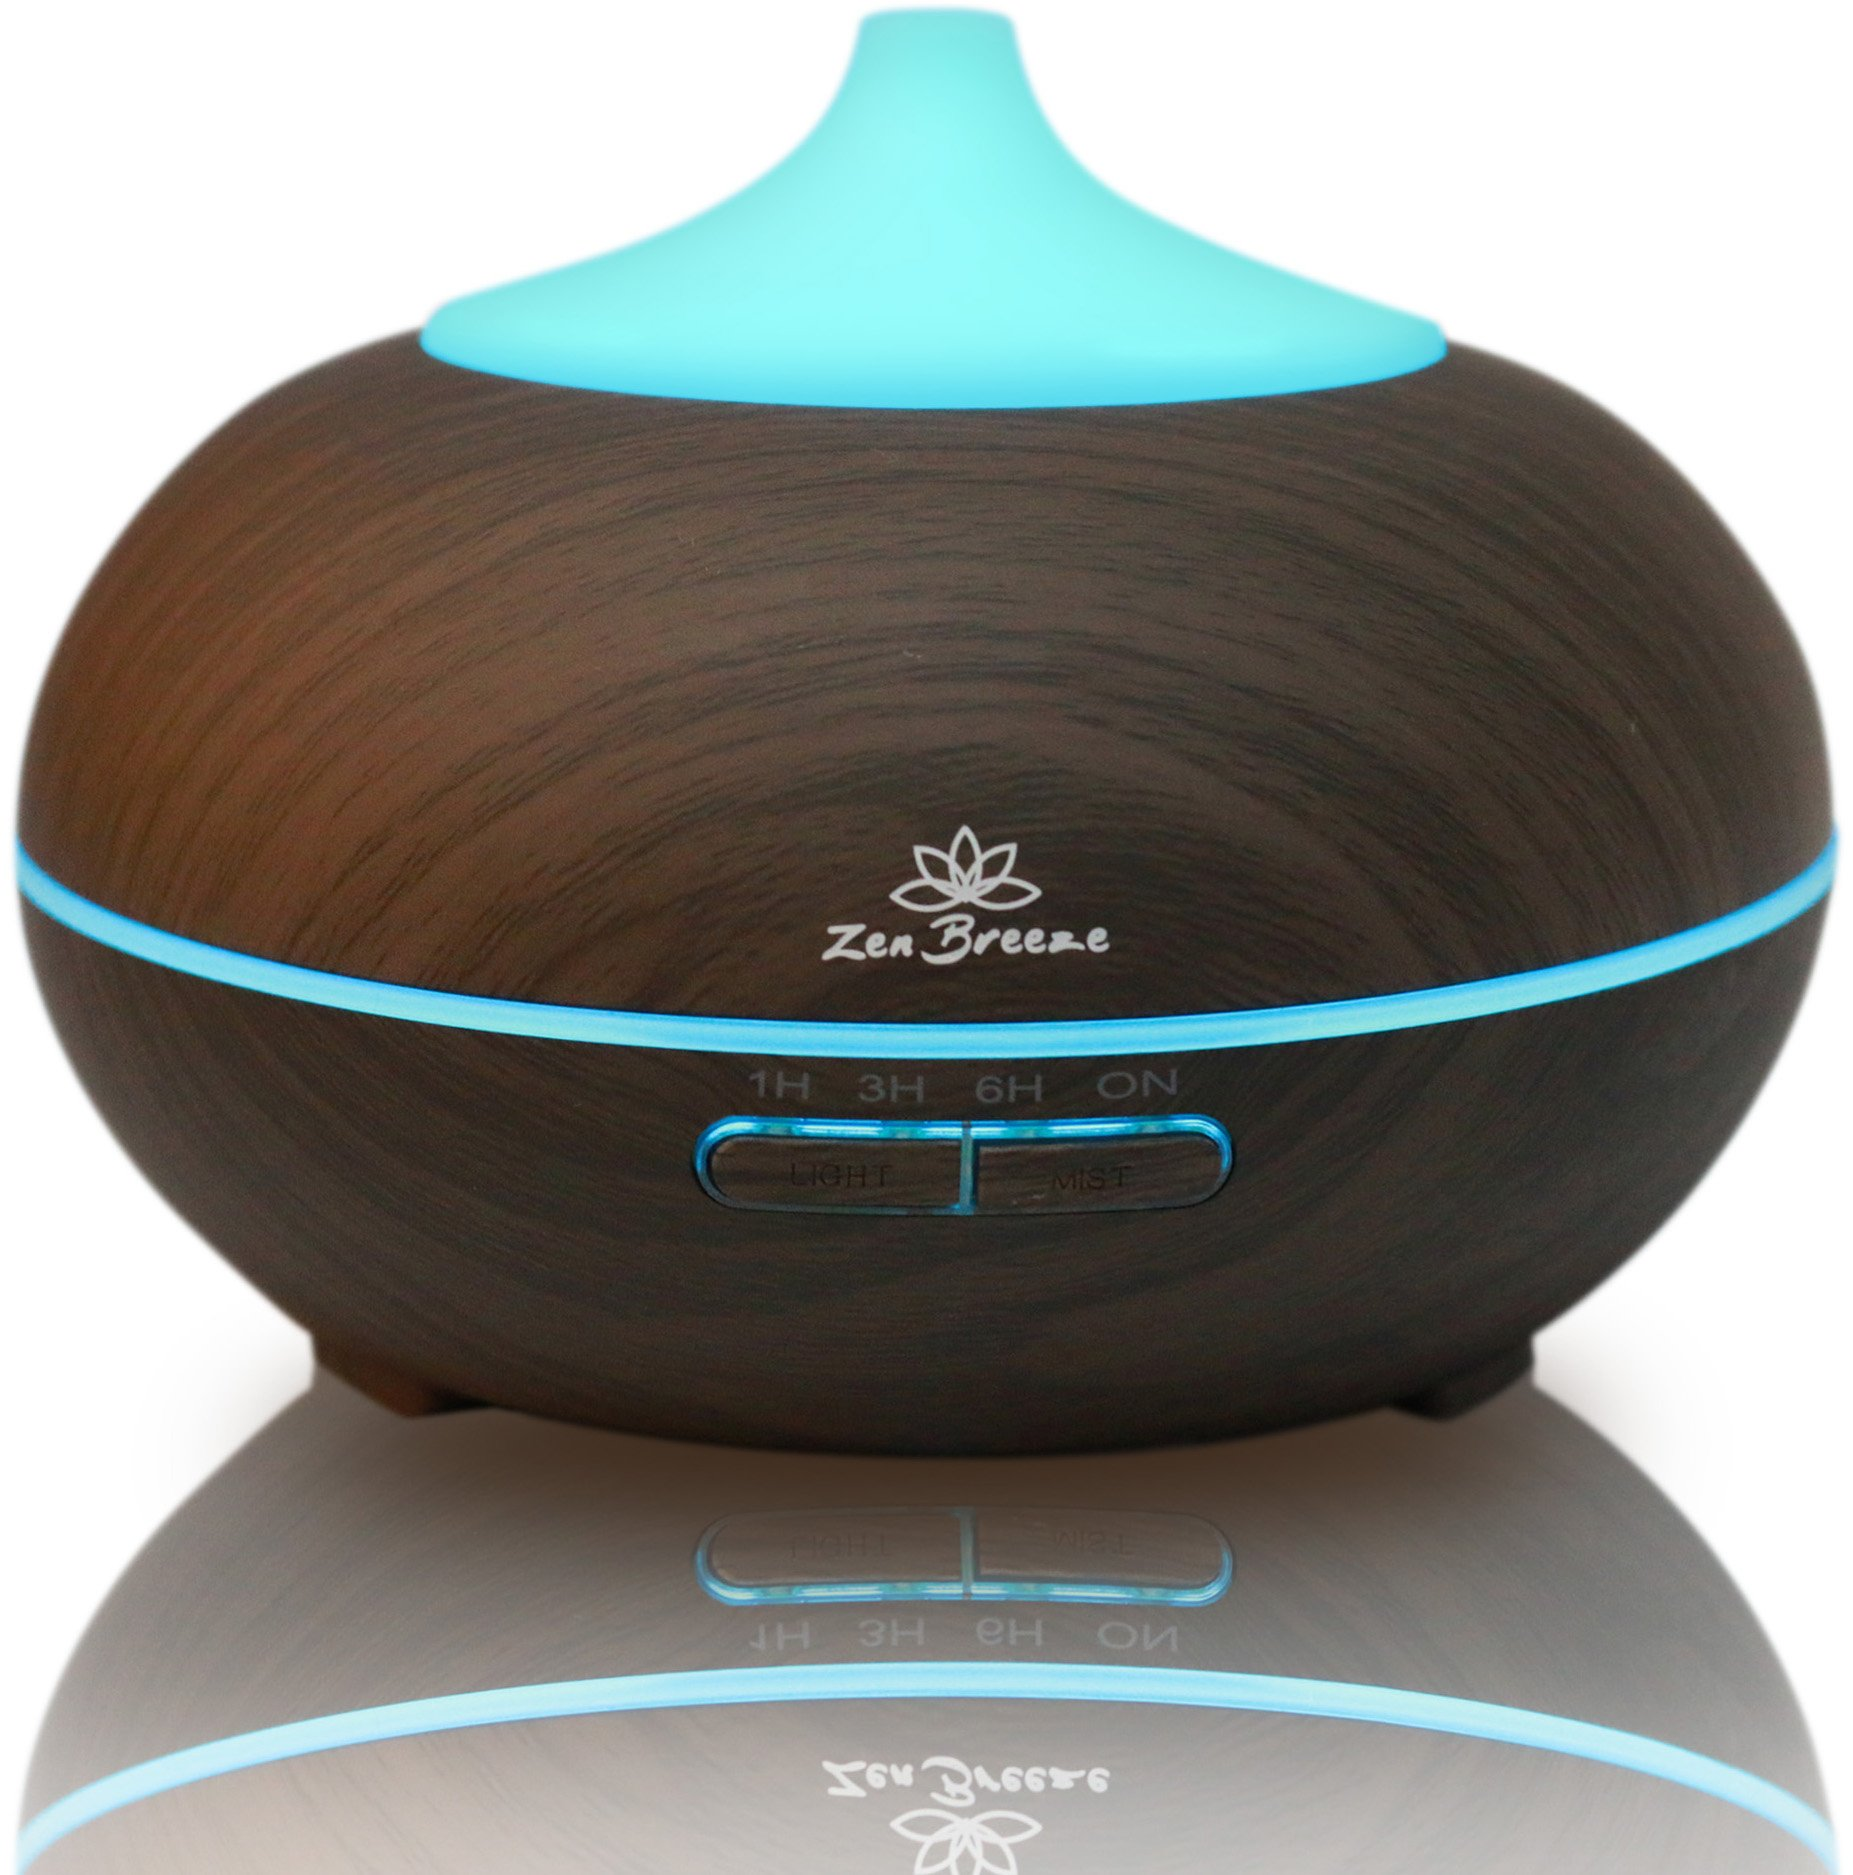 Zen Breeze Essential Oil Diffuser Dark Wood - Aromatherapy Diffuser - Birthday Gift Edition  sc 1 st  Amazon.com & Unique Gifts for Mom: Amazon.com